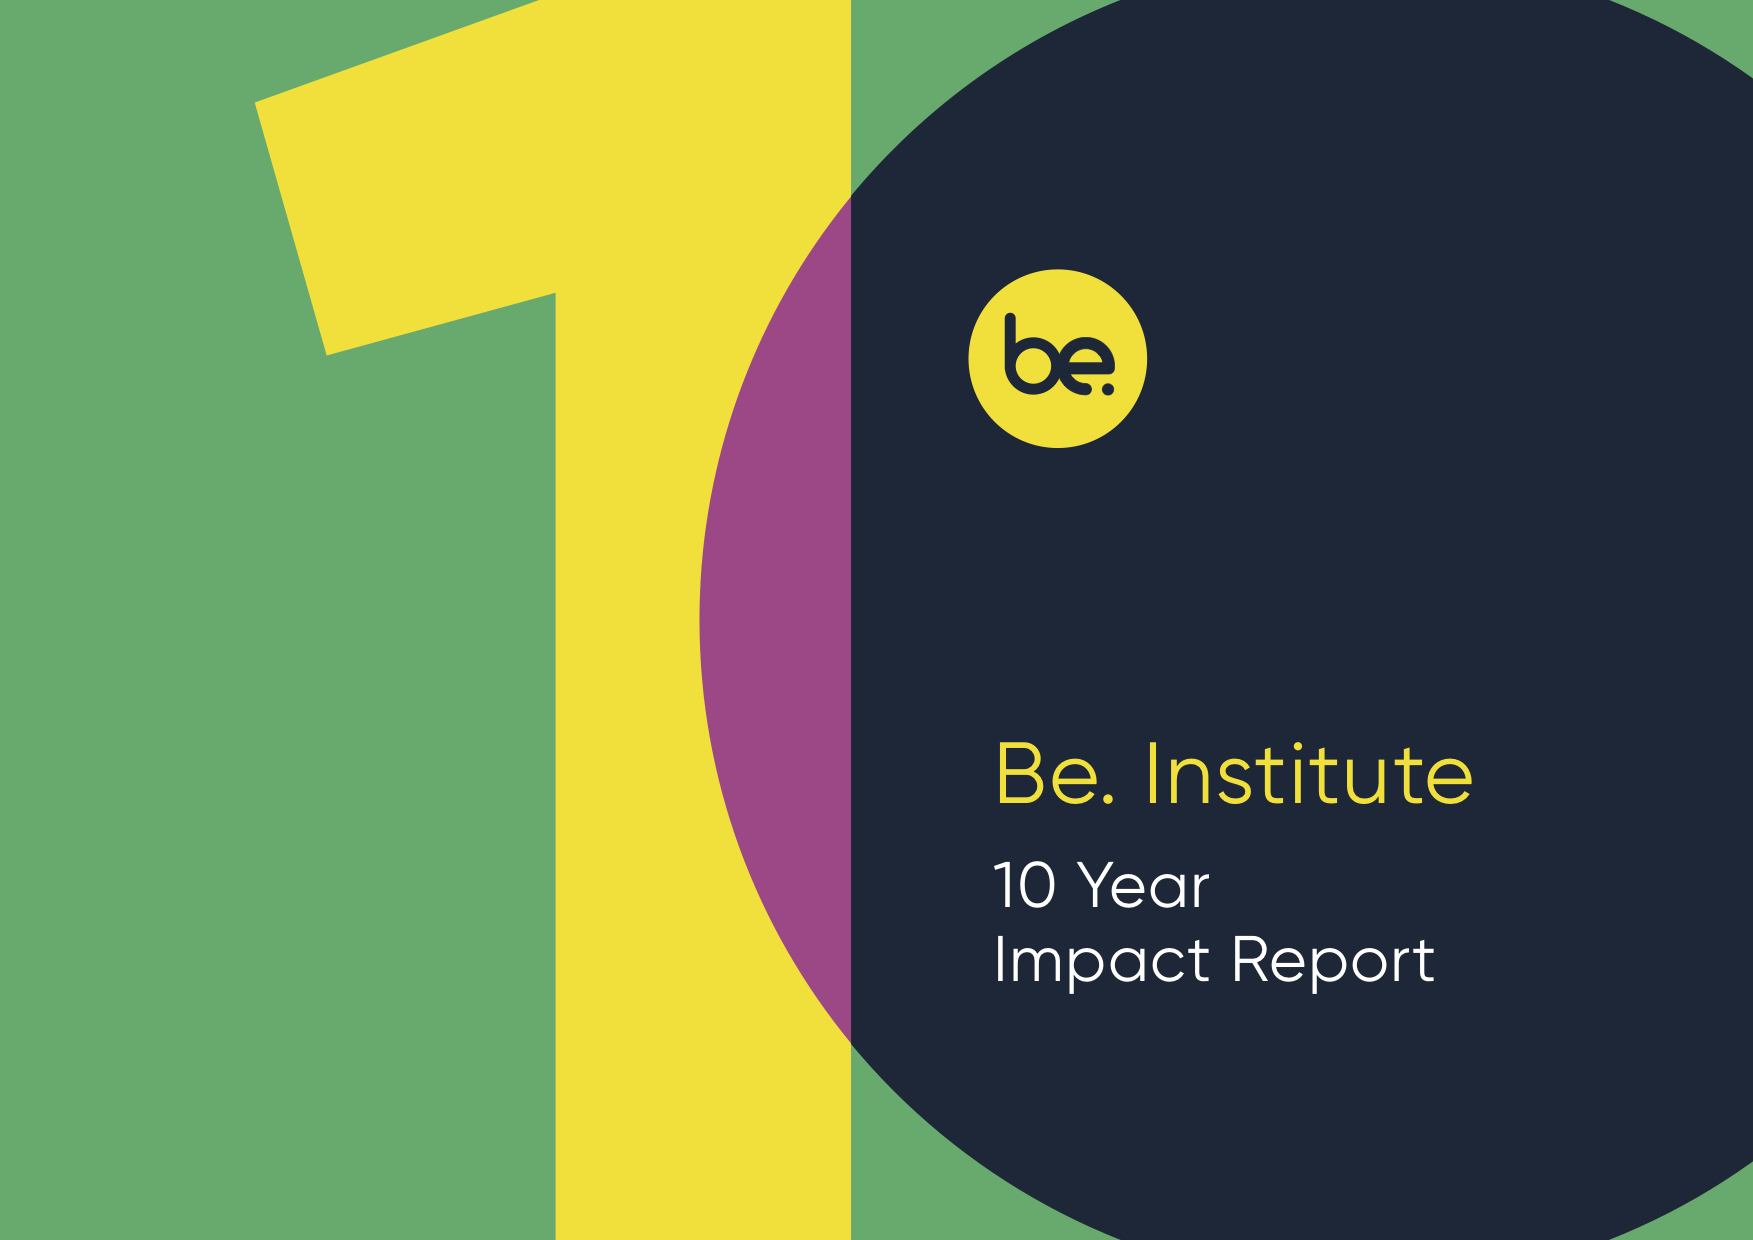 The Be. Institute 10 Year Report cover featuring a big graphically designed 1-0 in bright green, yellow and blue